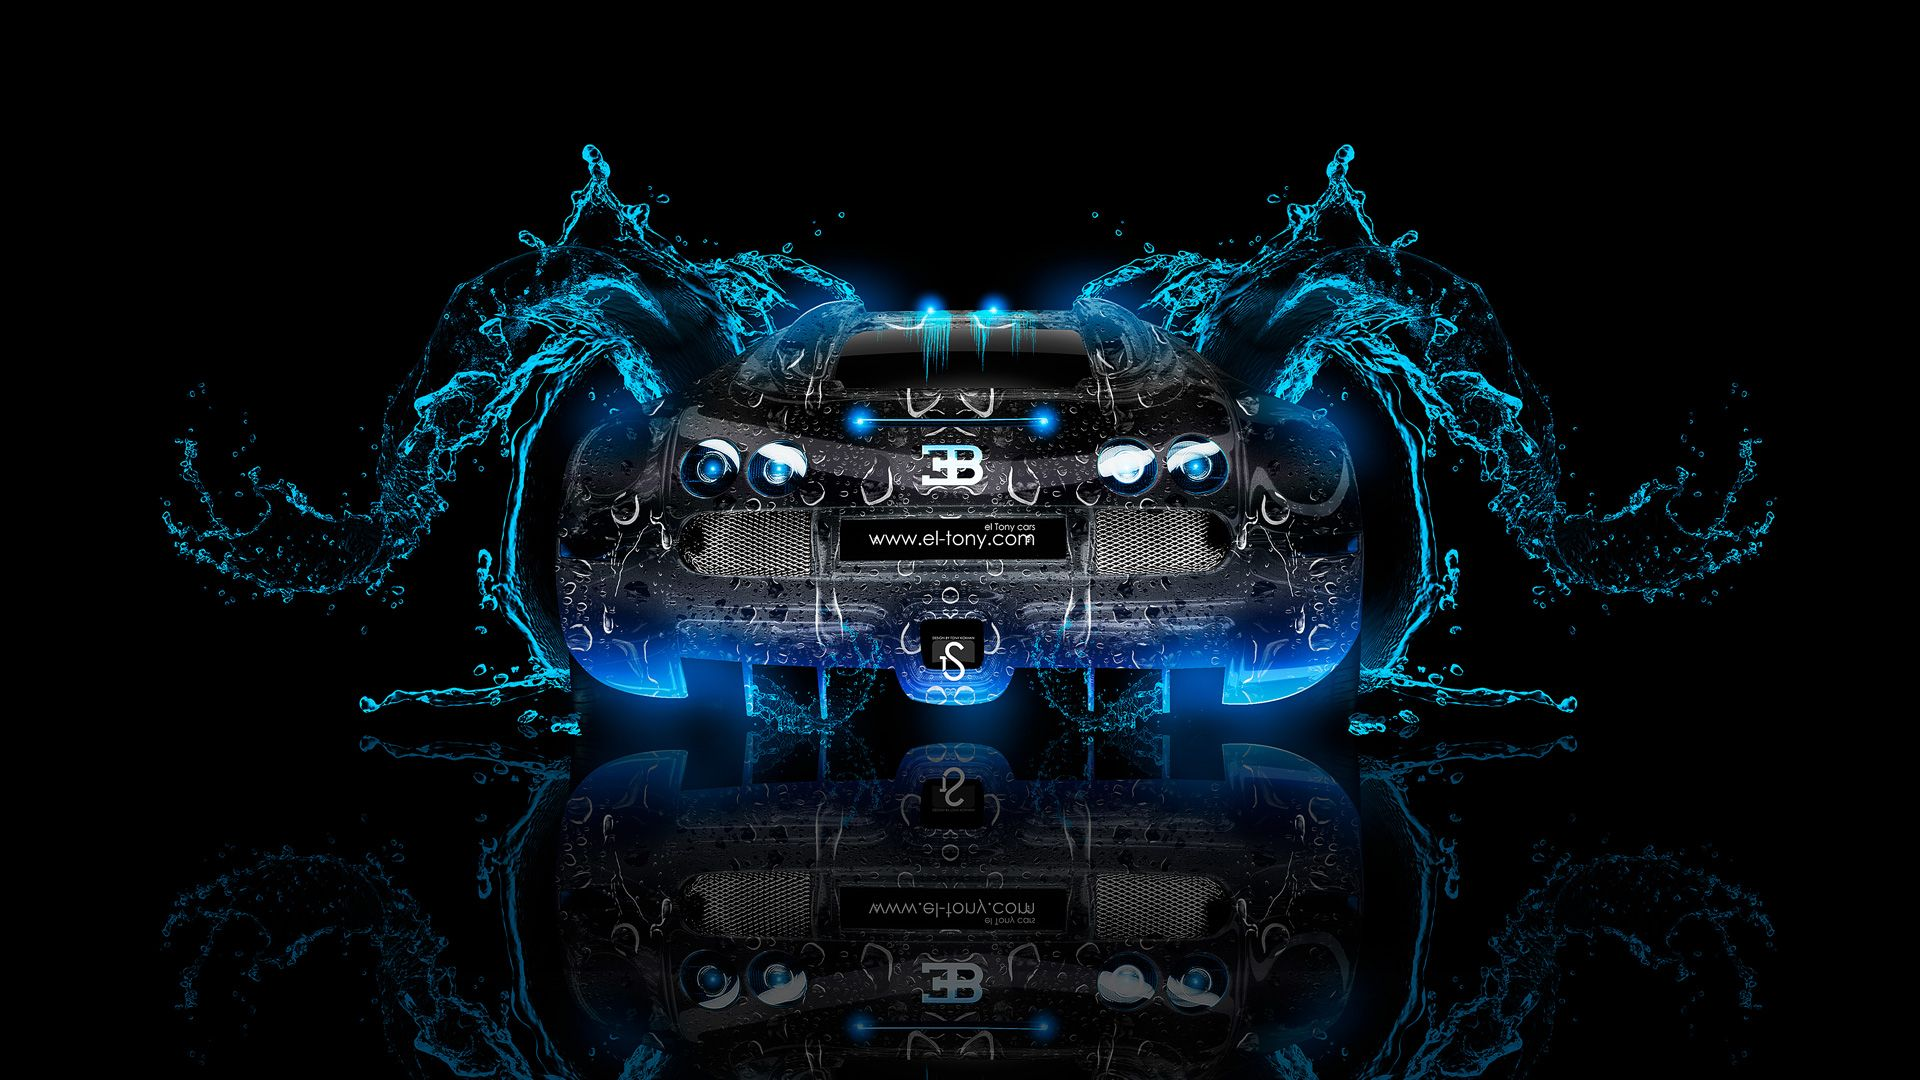 neon bugatti for pinterest - photo #6